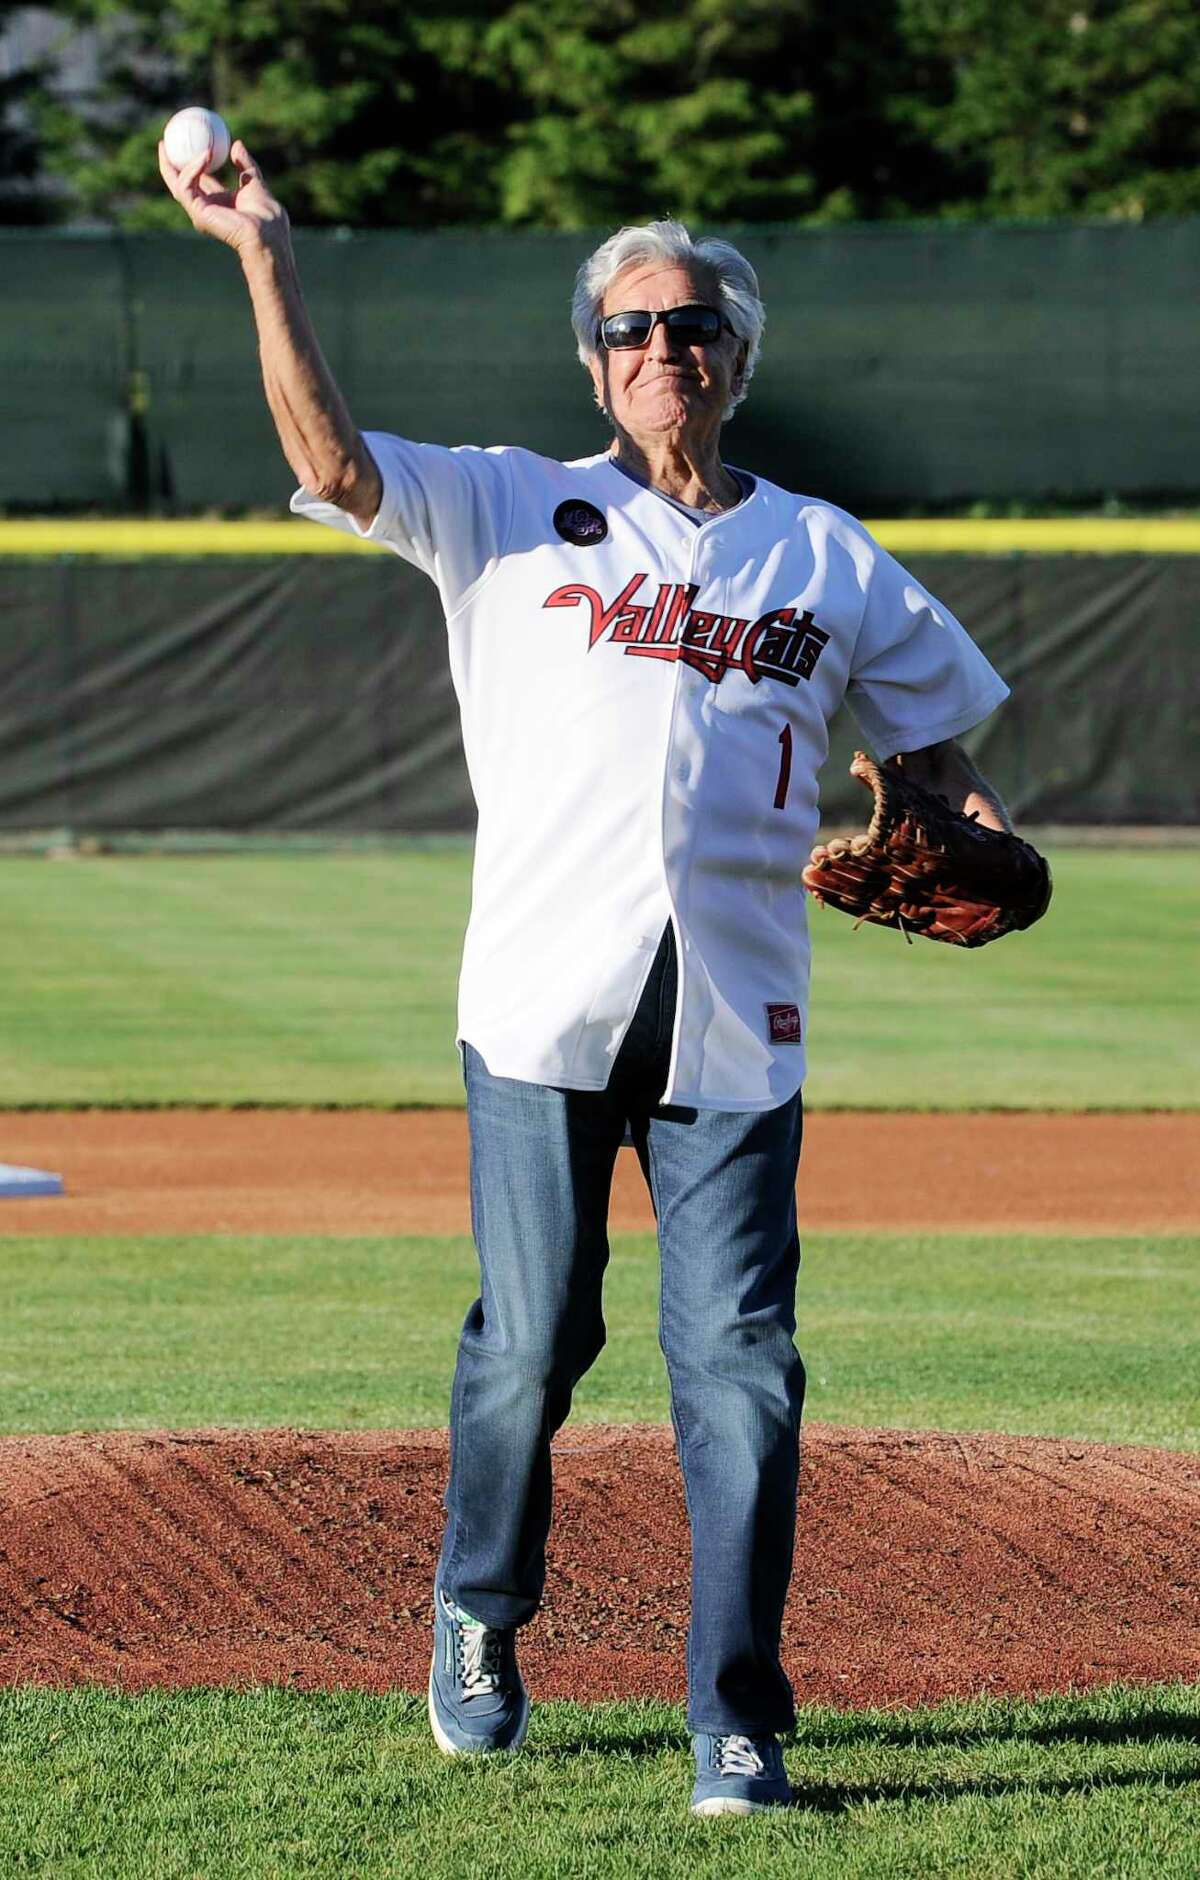 Joe Bruno throws out the first pitch as the Tri-City ValleyCats play the Vermont Lake Monsters during their regular-season home opener baseball game Friday, June 15, 2018, in Troy, N.Y. (Hans Pennink / Special to the Times Union)